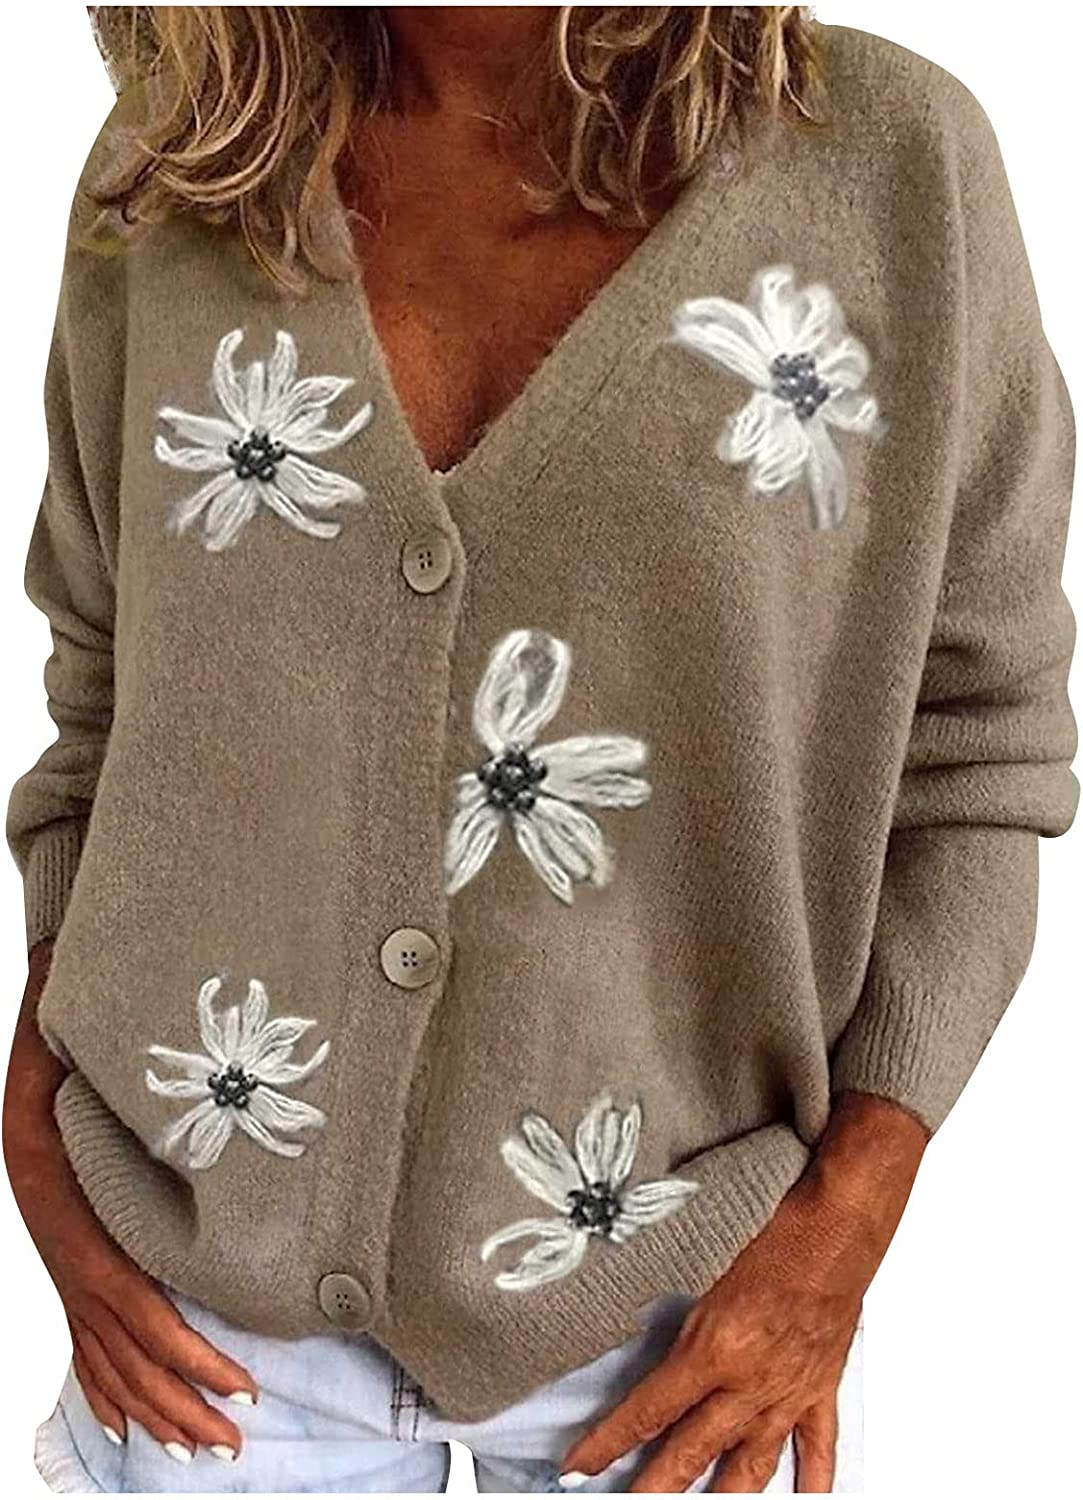 Womens Floral Print Baggy Knitwear Sweater Casual Blouse Button Down Long Sleeves Knitted Sweater Cadigans Jumper Coat